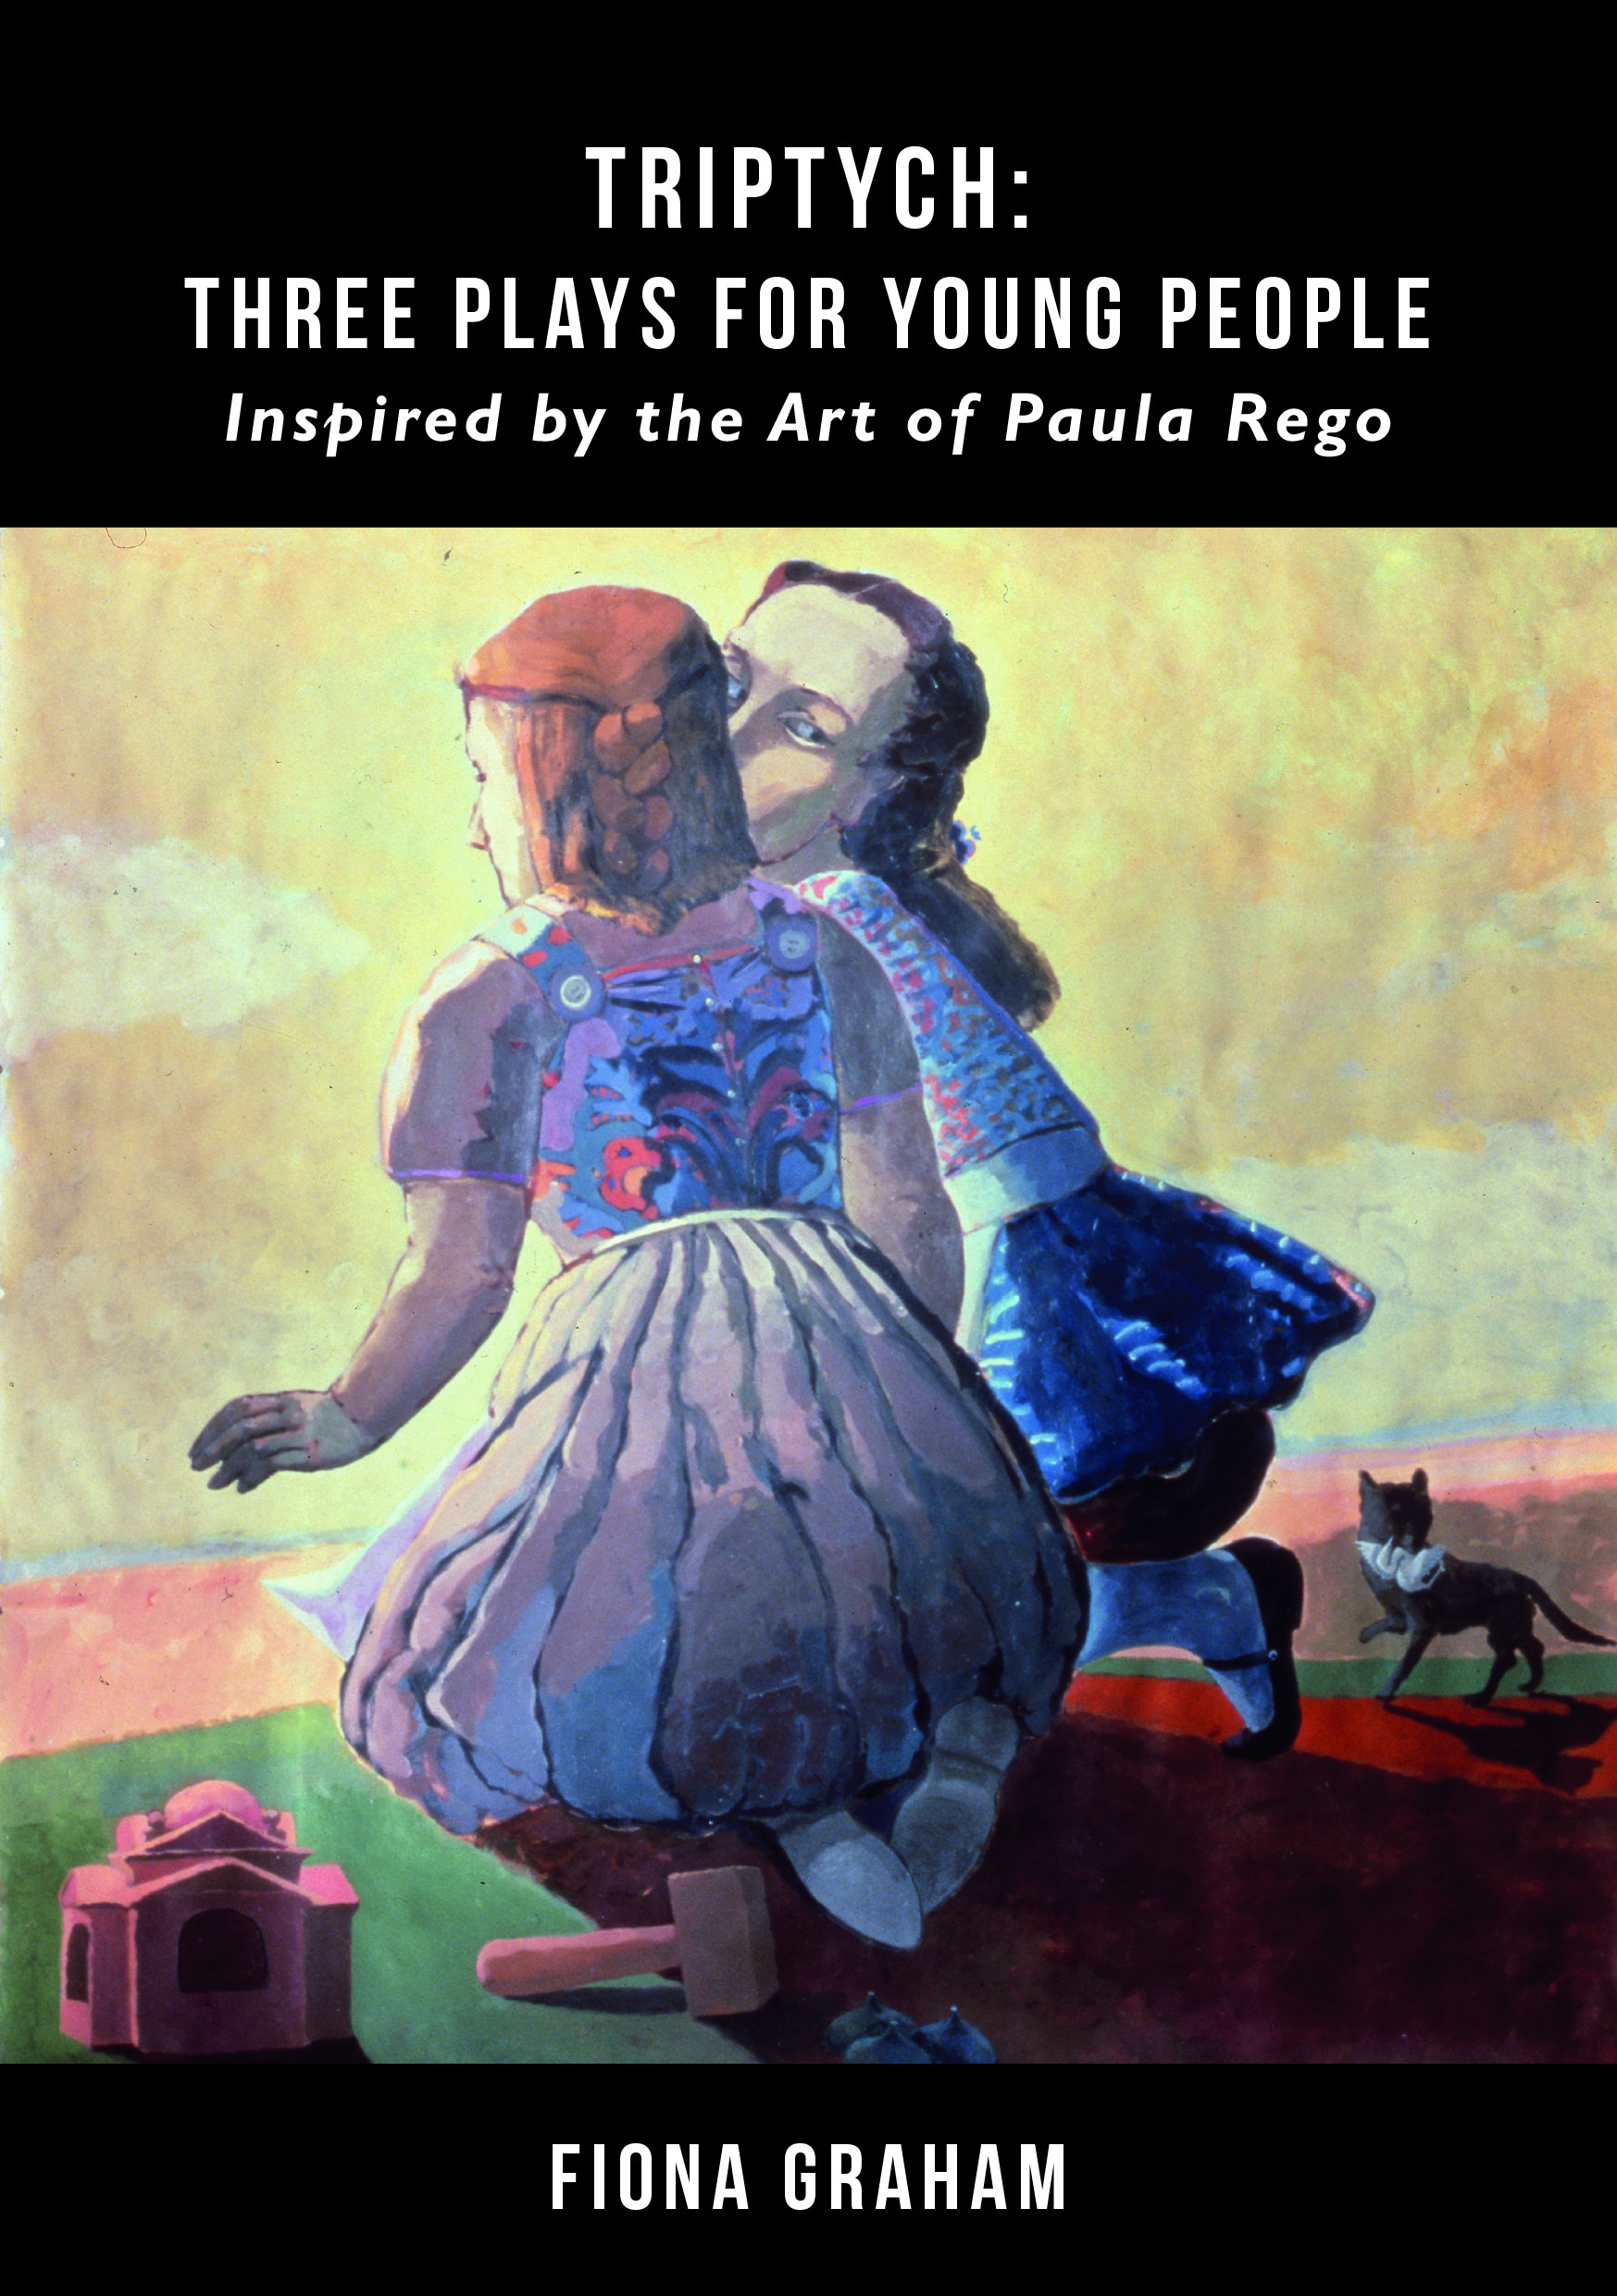 Triptych: Three Plays for Young People inspired by the Art of Paula Rego